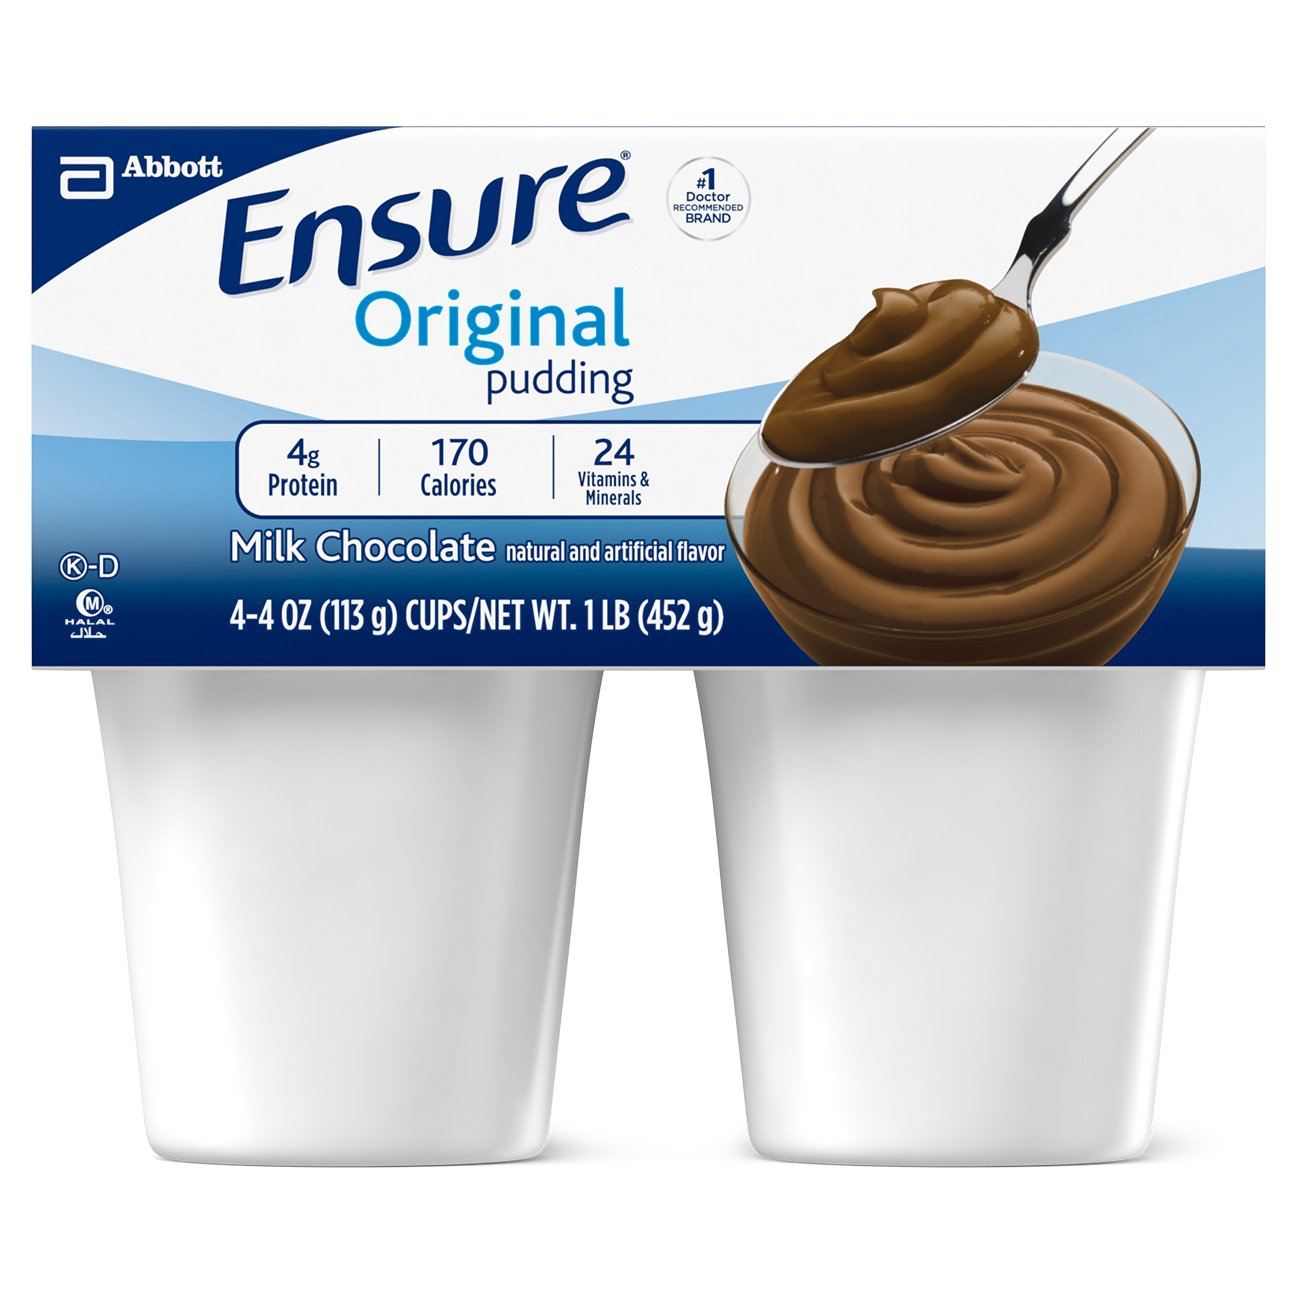 Ensure Pudding, Creamy Milk Chocolate, 4-Ounce Cup, 4 Count, (Pack of 12) by Ensure (Image #1)